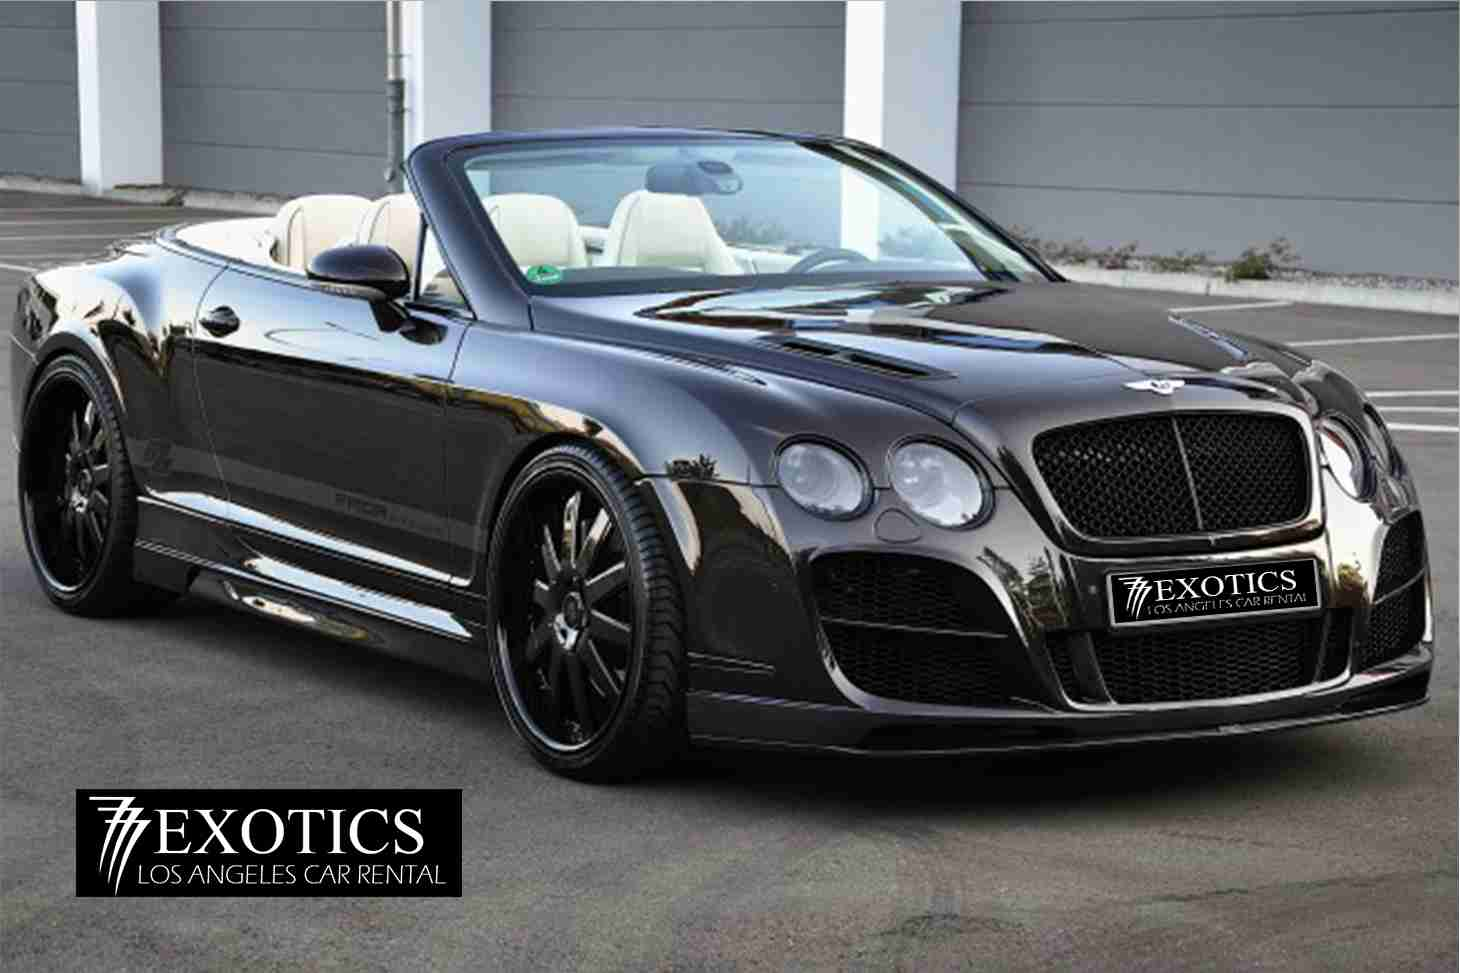 bentley gt convertible 777 exotic car rental los angeles. Black Bedroom Furniture Sets. Home Design Ideas